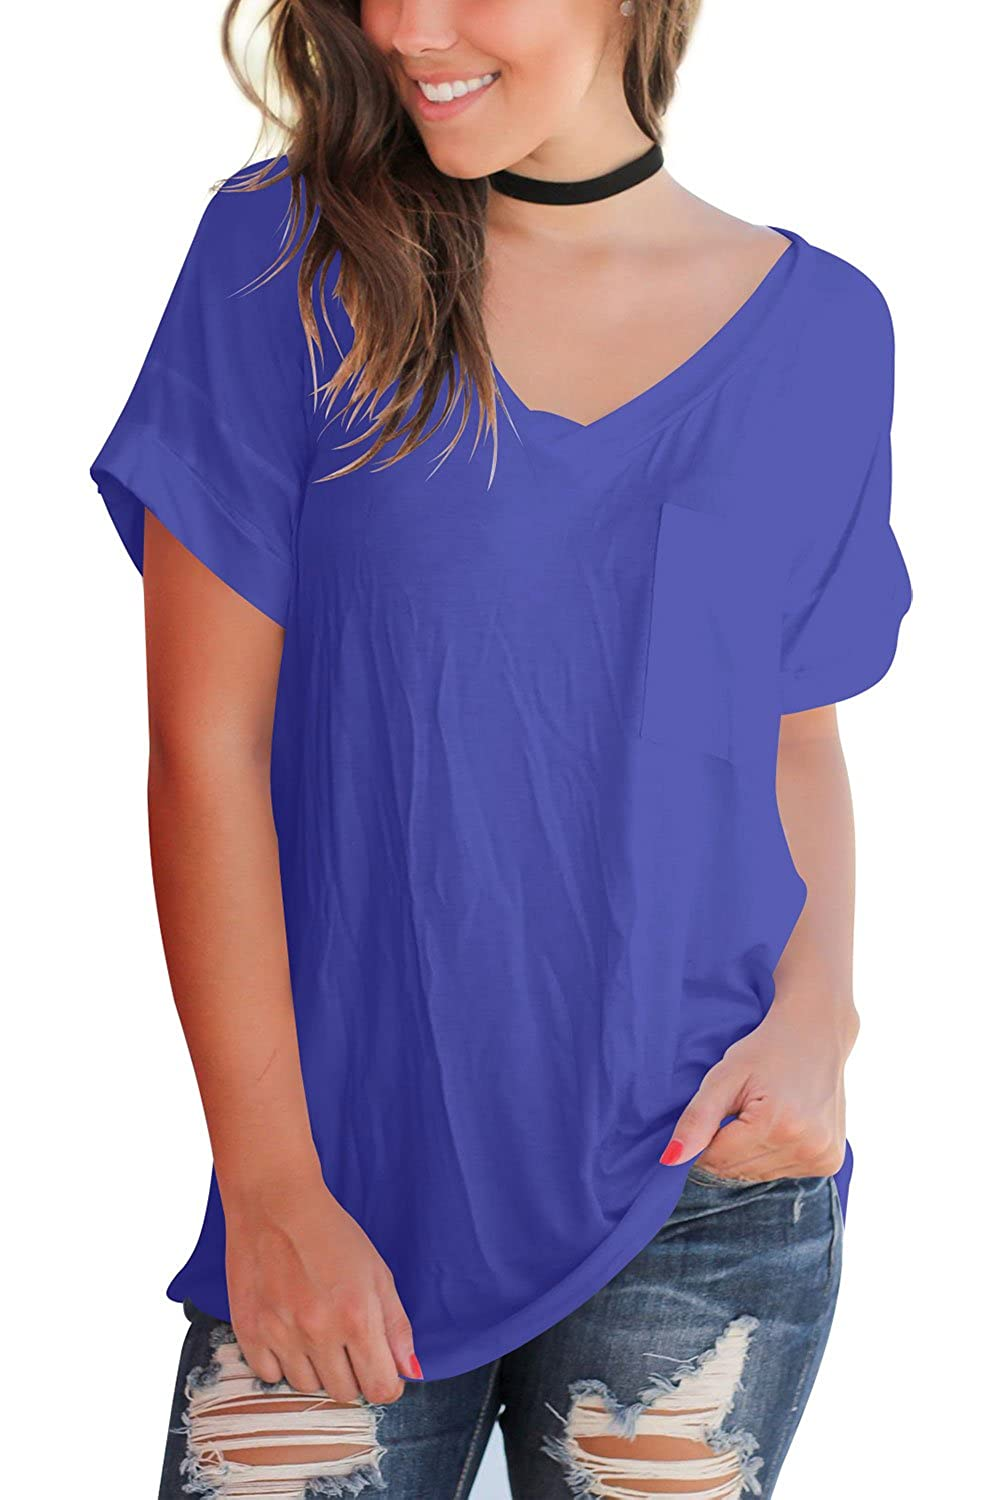 FAVALIVE Women's Short Sleeve Tops Casual V-Neck T-Shirts with Front Pocket